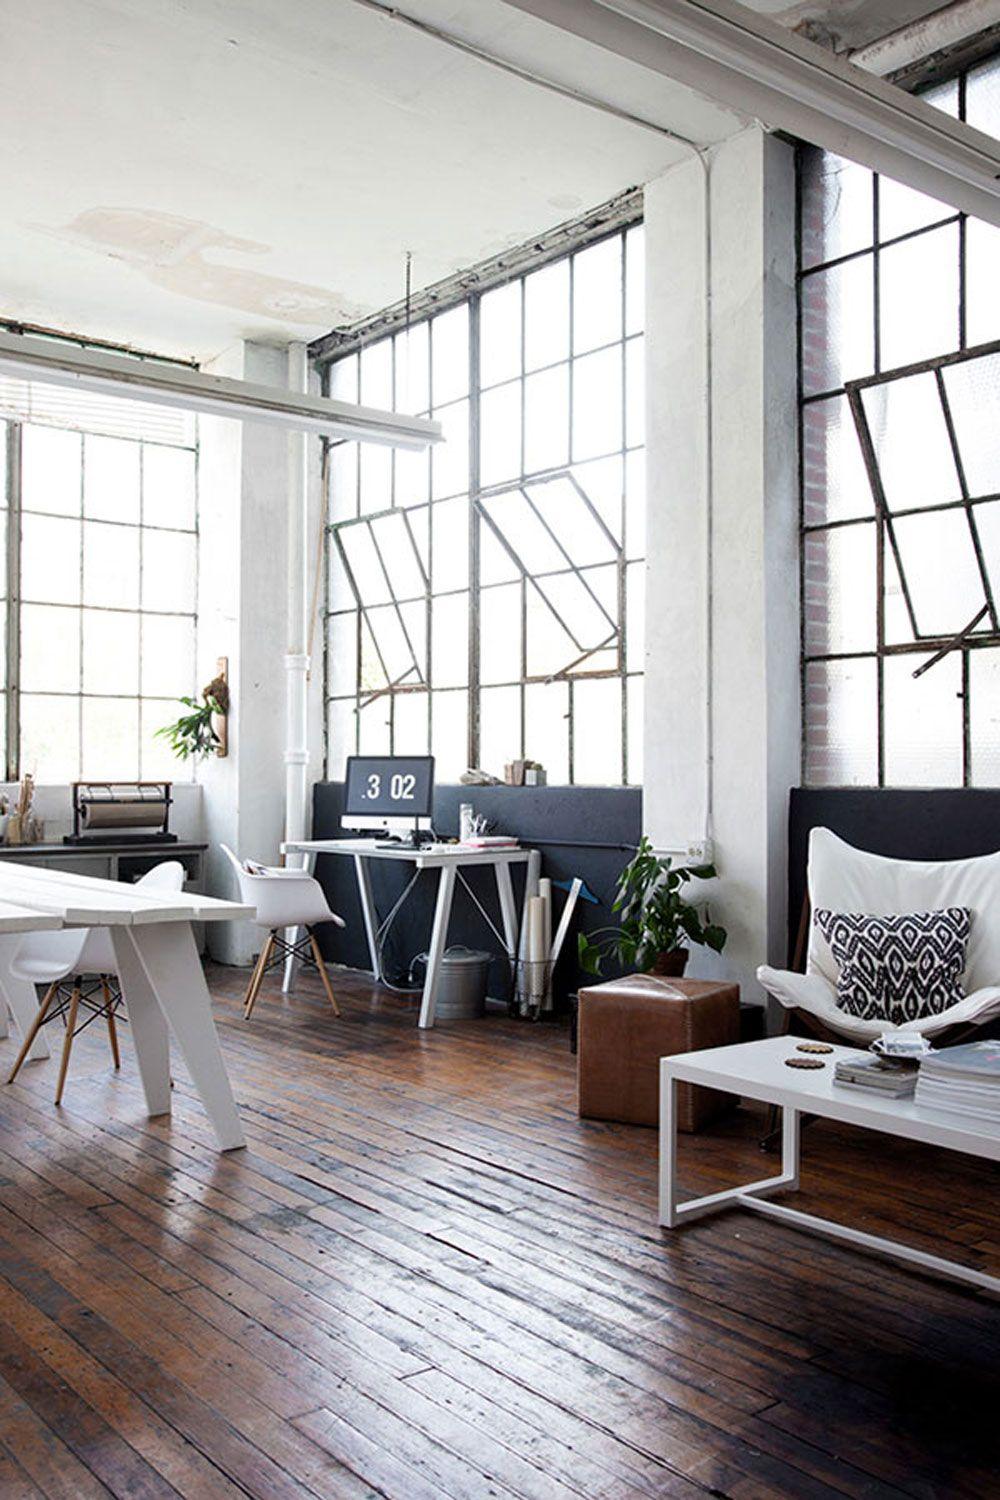 Interior Design Space: Beautiful Modern Loft Space. Home Renovation Inspiration